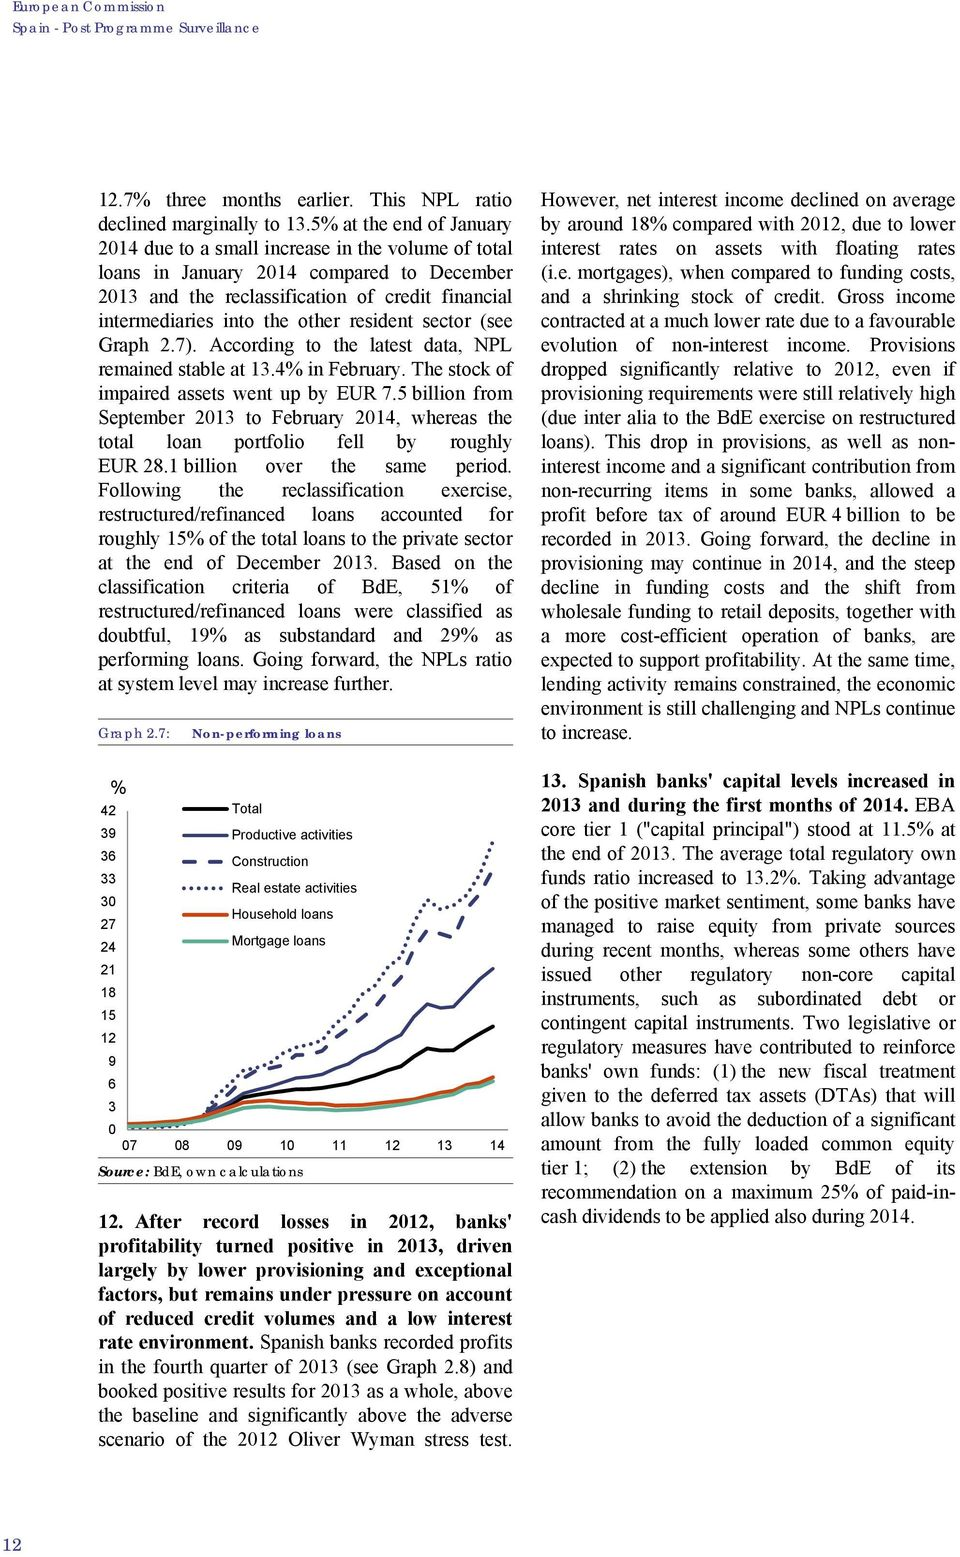 resident sector (see Graph 2.7). According to the latest data, NPL remained stable at 13.4% in February. The stock of impaired assets went up by EUR 7.